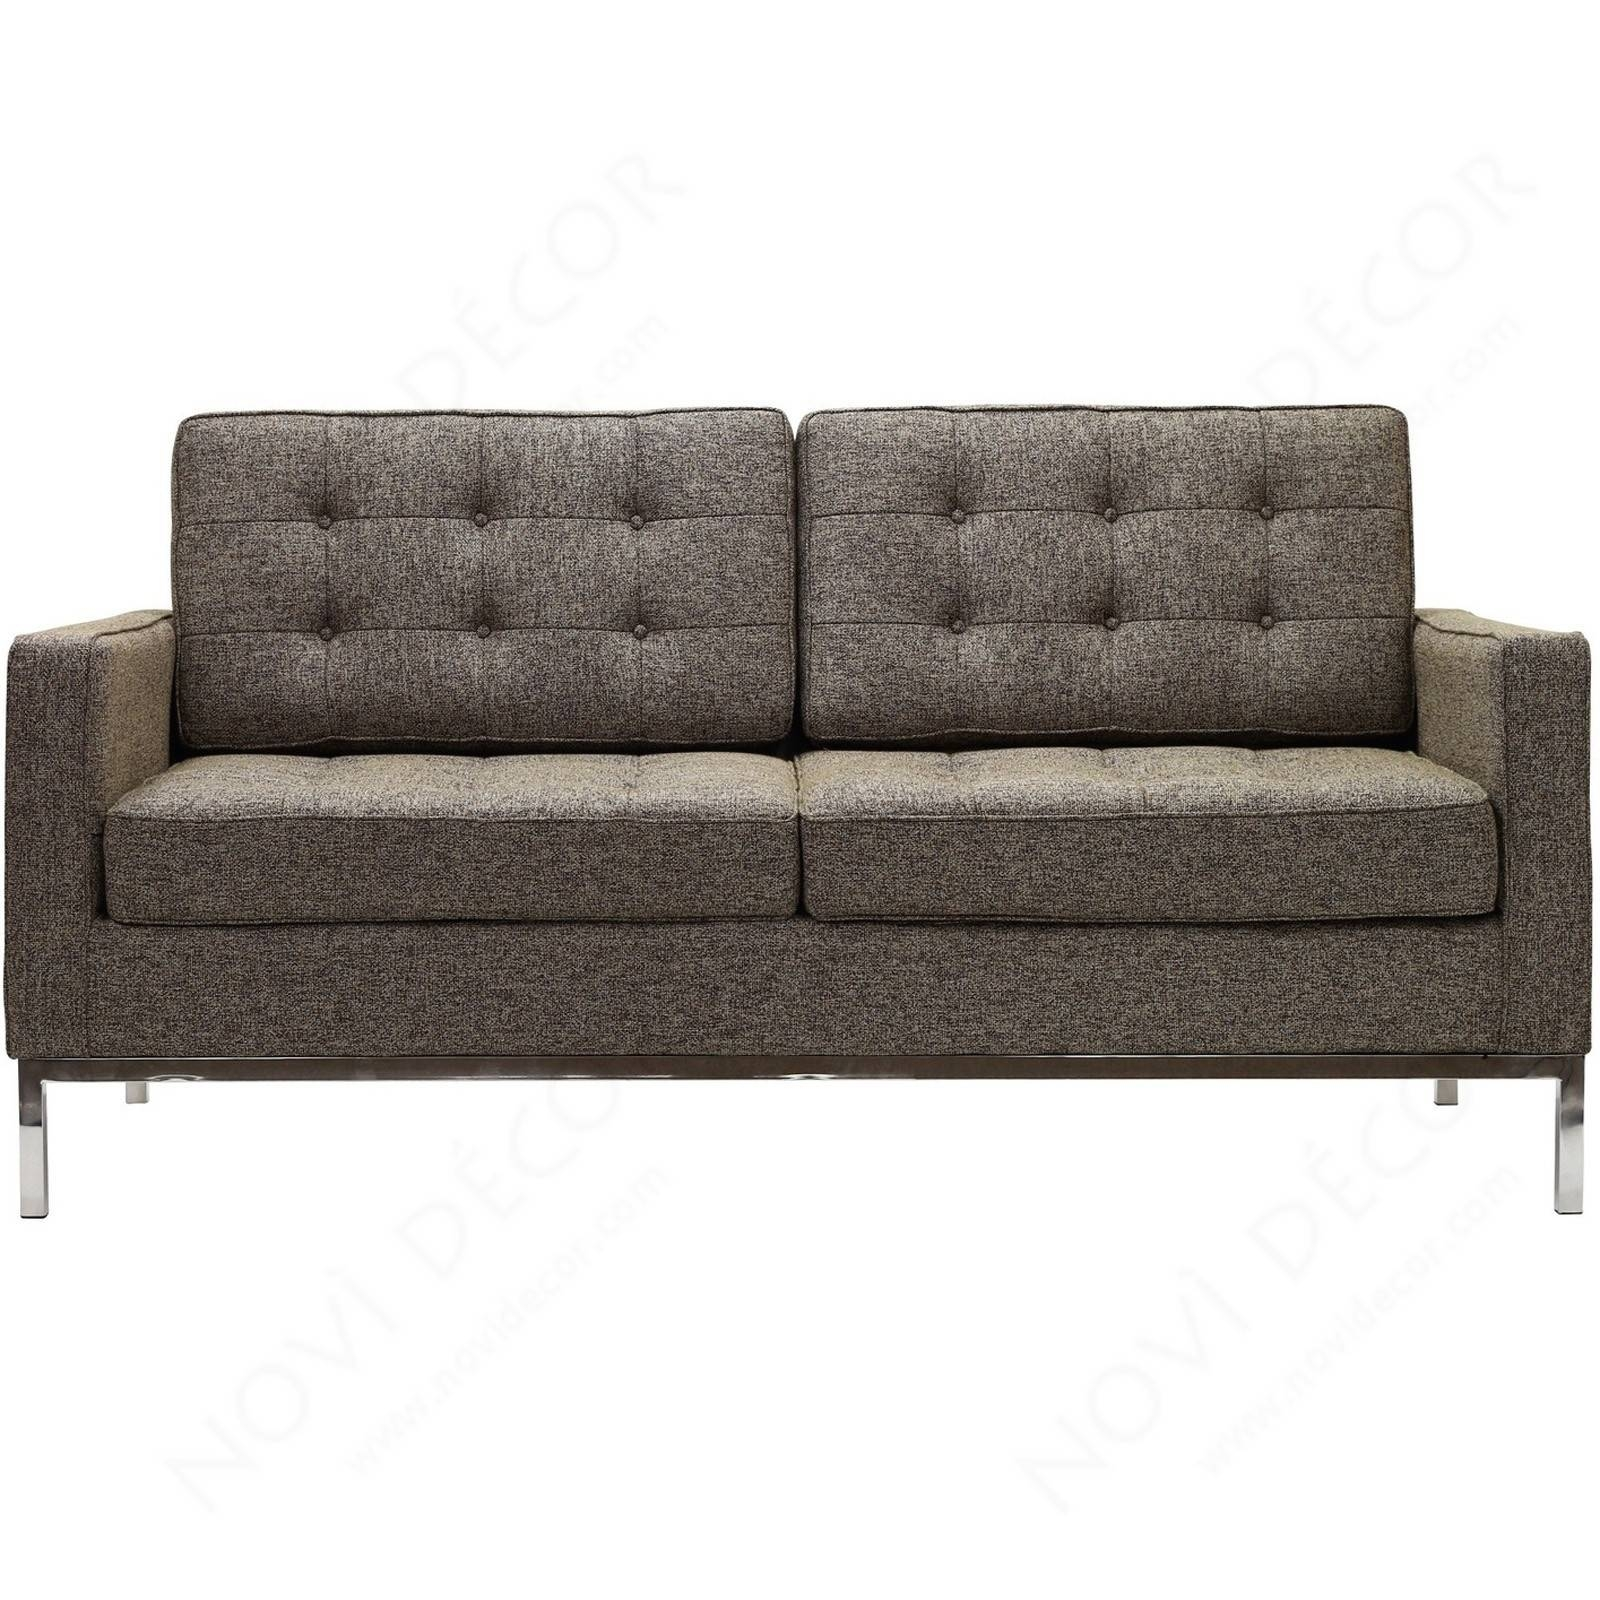 Florence Style Loveseat In Wool (Multiple Colors) | Designer within Florence Sofas and Loveseats (Image 17 of 25)